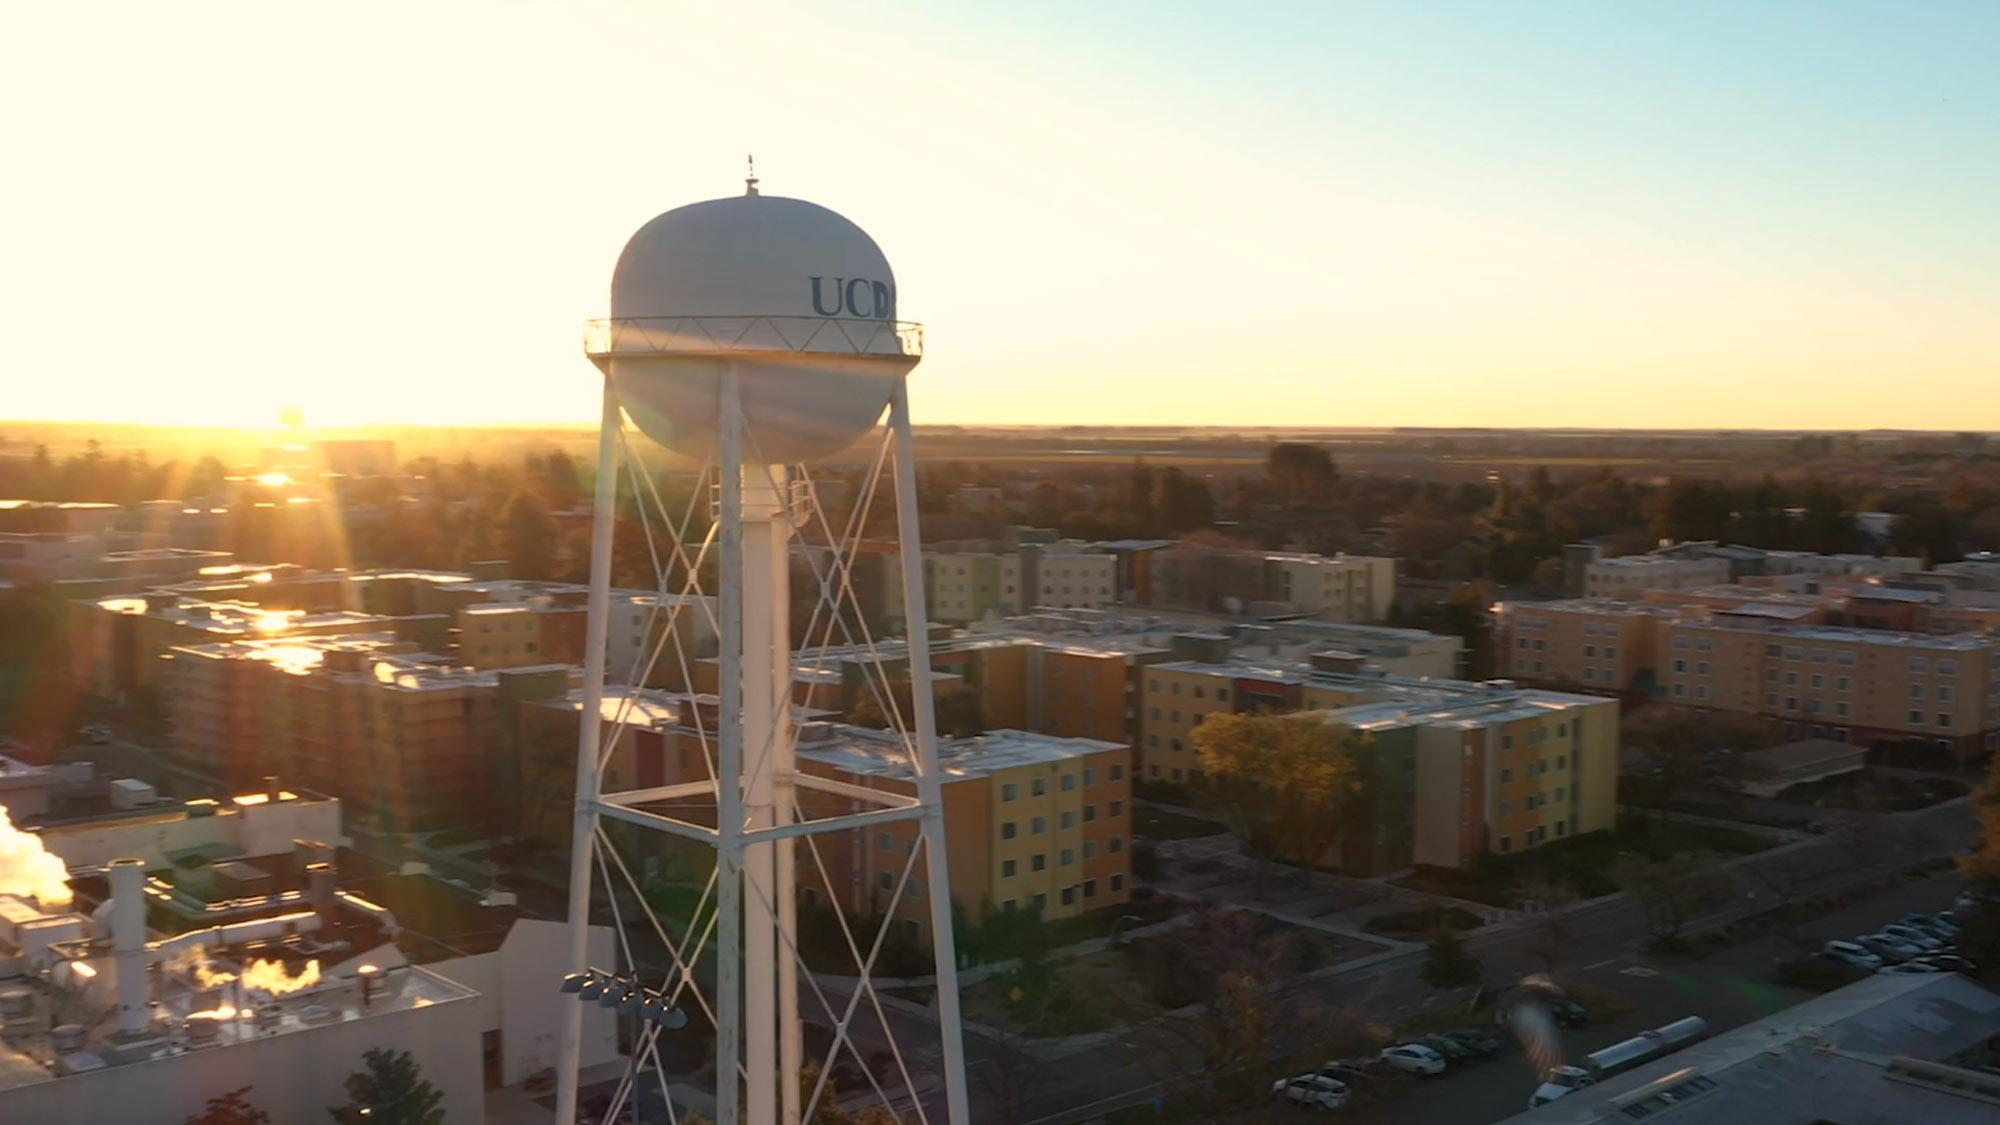 aerial image of UC Davis water tower